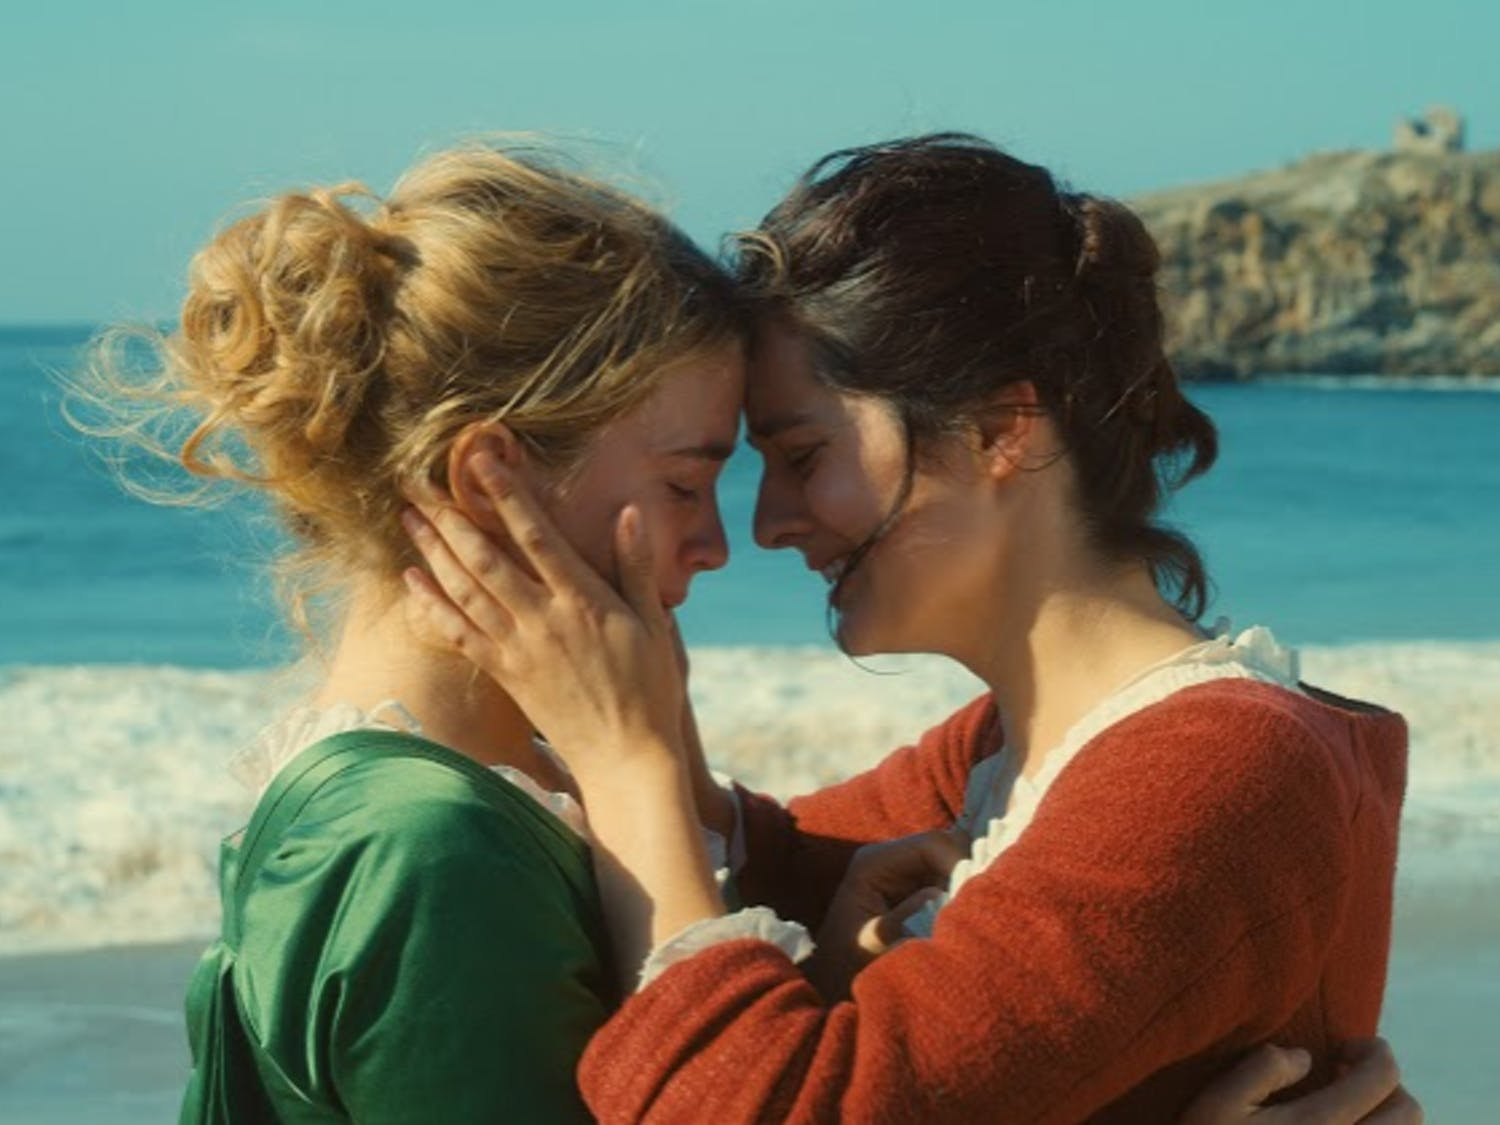 """Adèle Haenel as Héloïse, left, and Noémie Merlant as Marianne play two star-crossed lovers in """"Portrait of a Lady on Fire,"""" directed by Céline Sciamma."""